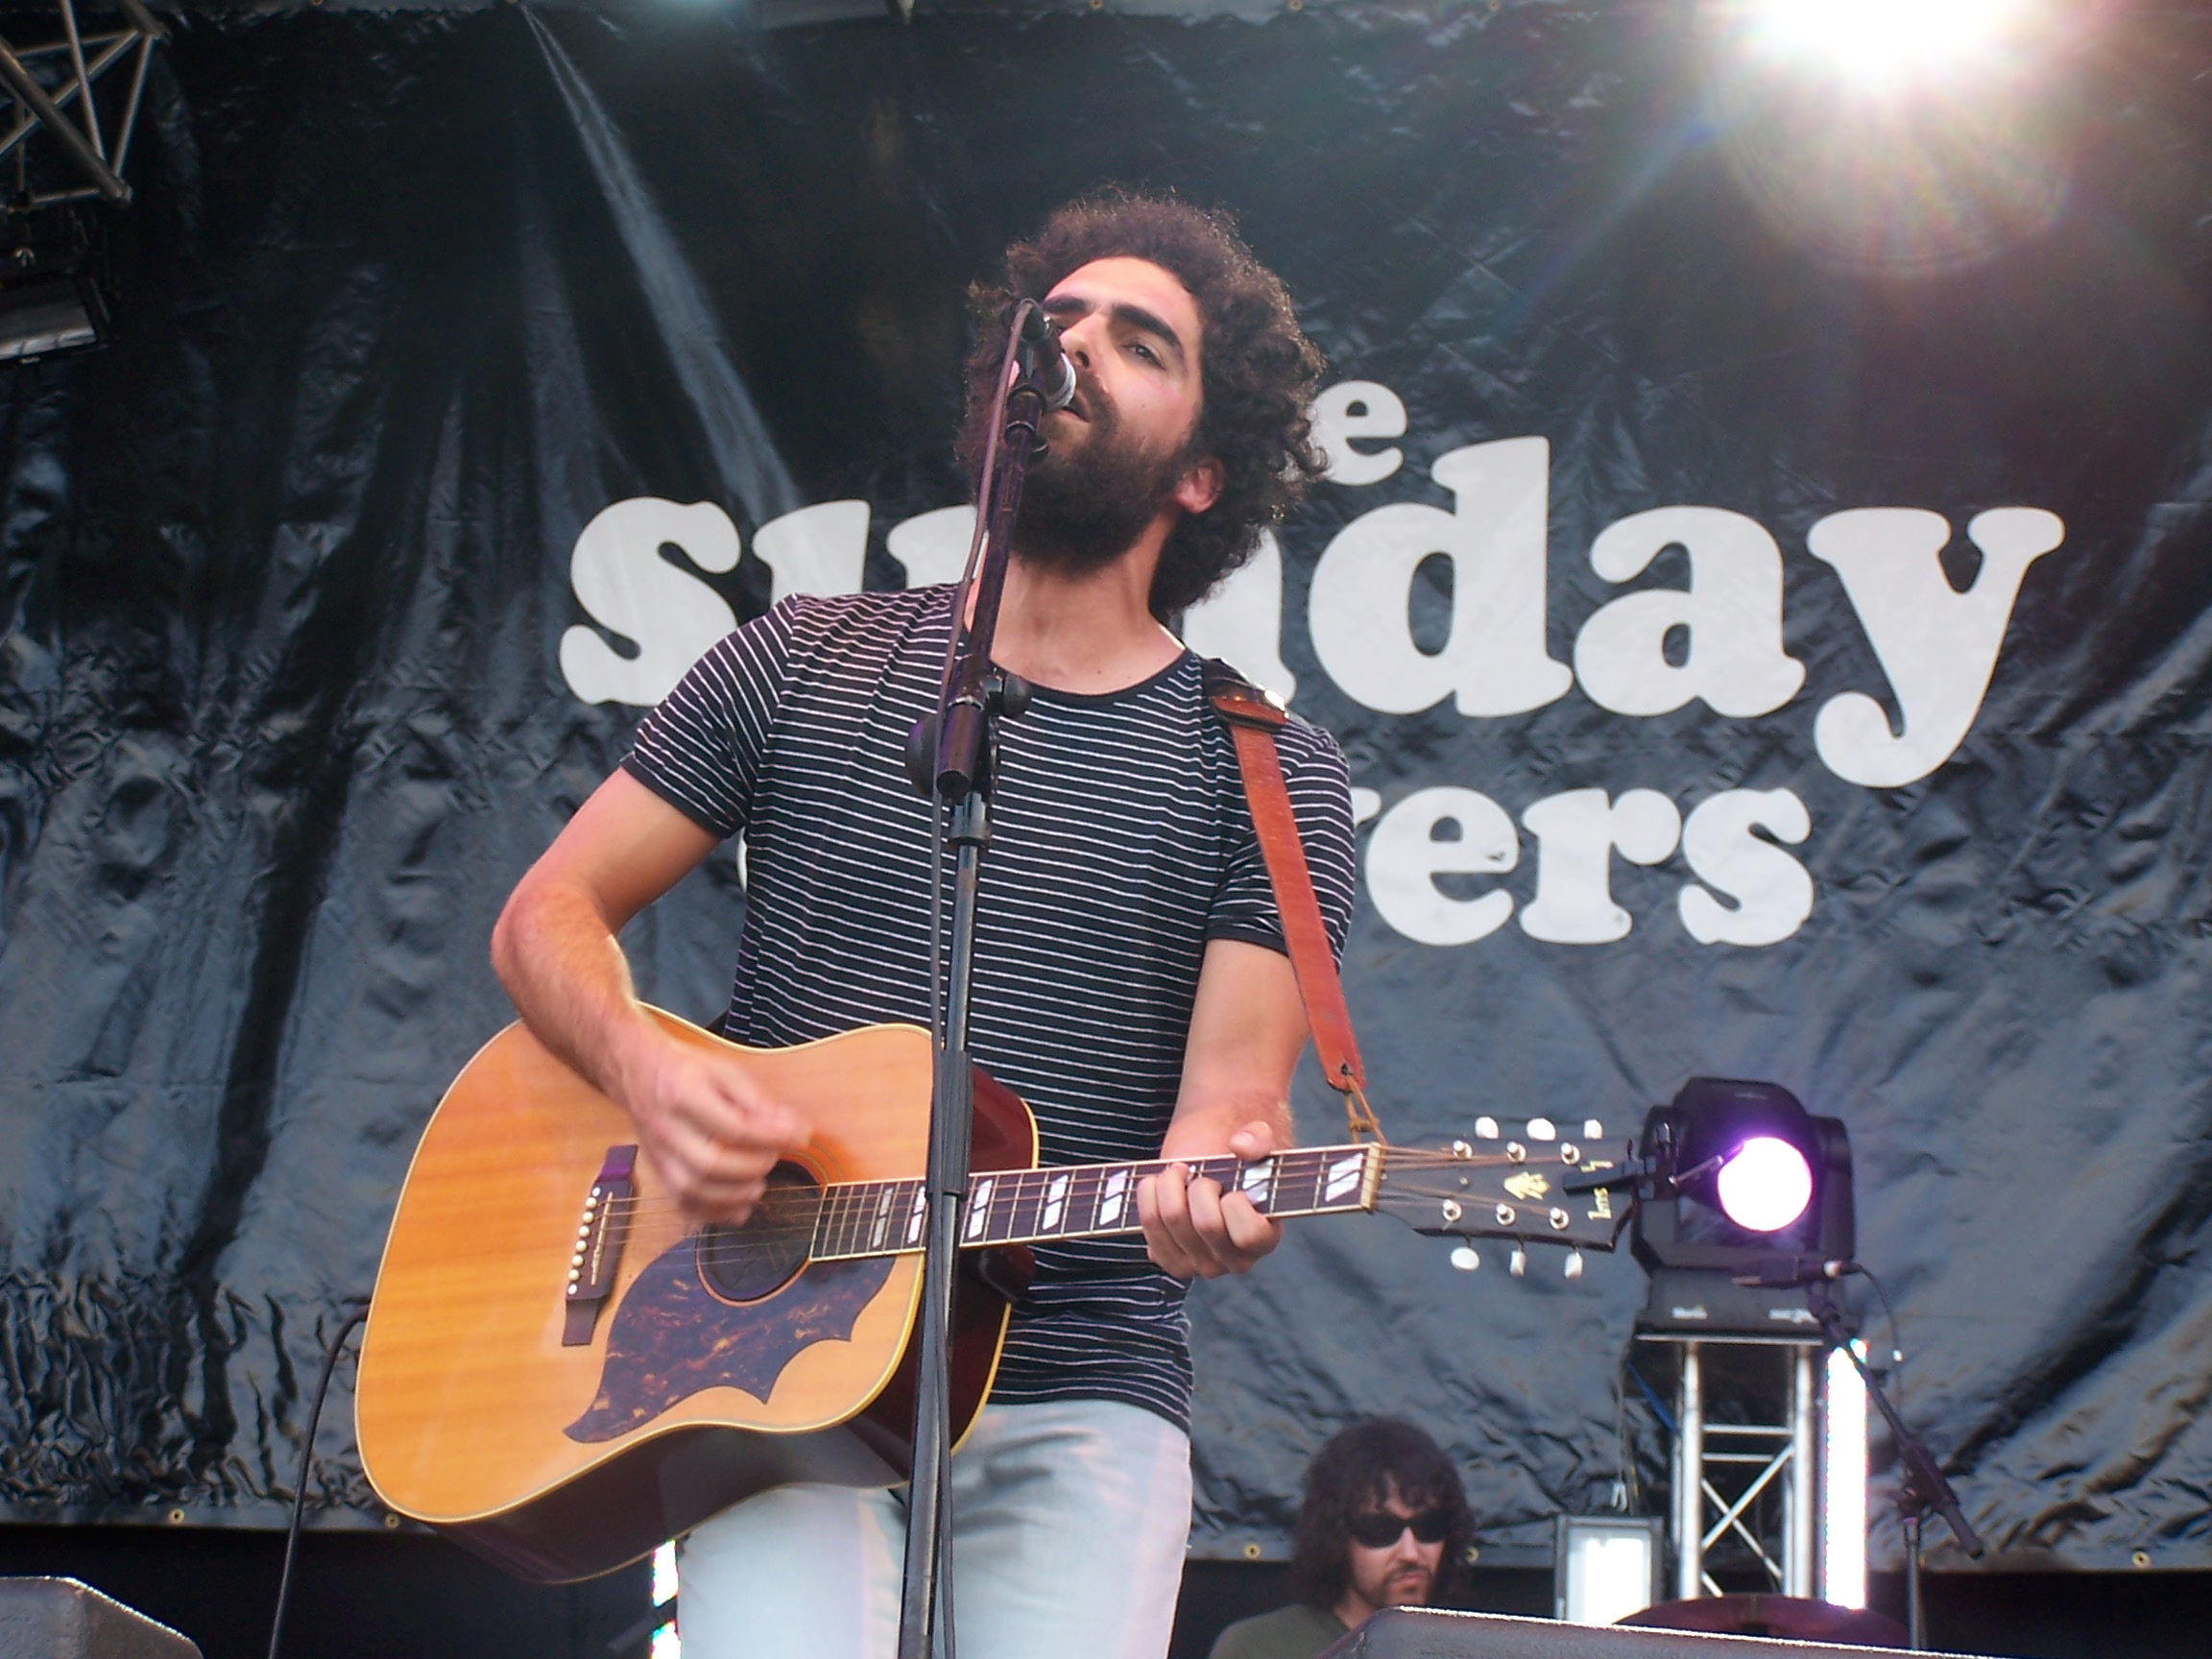 The Sunday Drivers